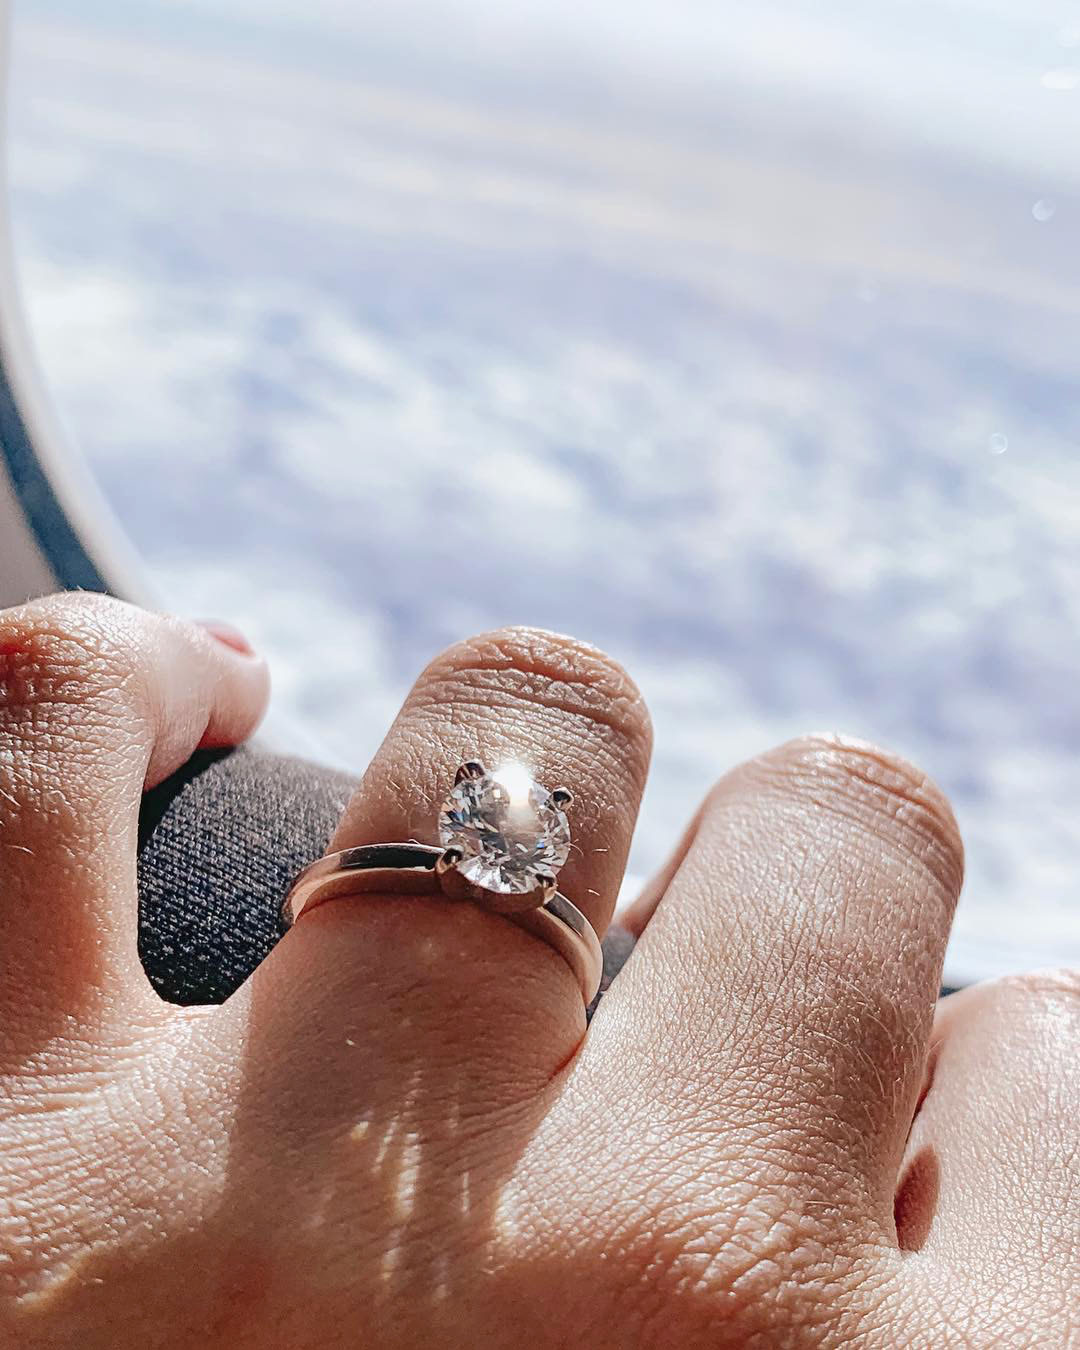 engagement ring selfie airplane window view of clouds